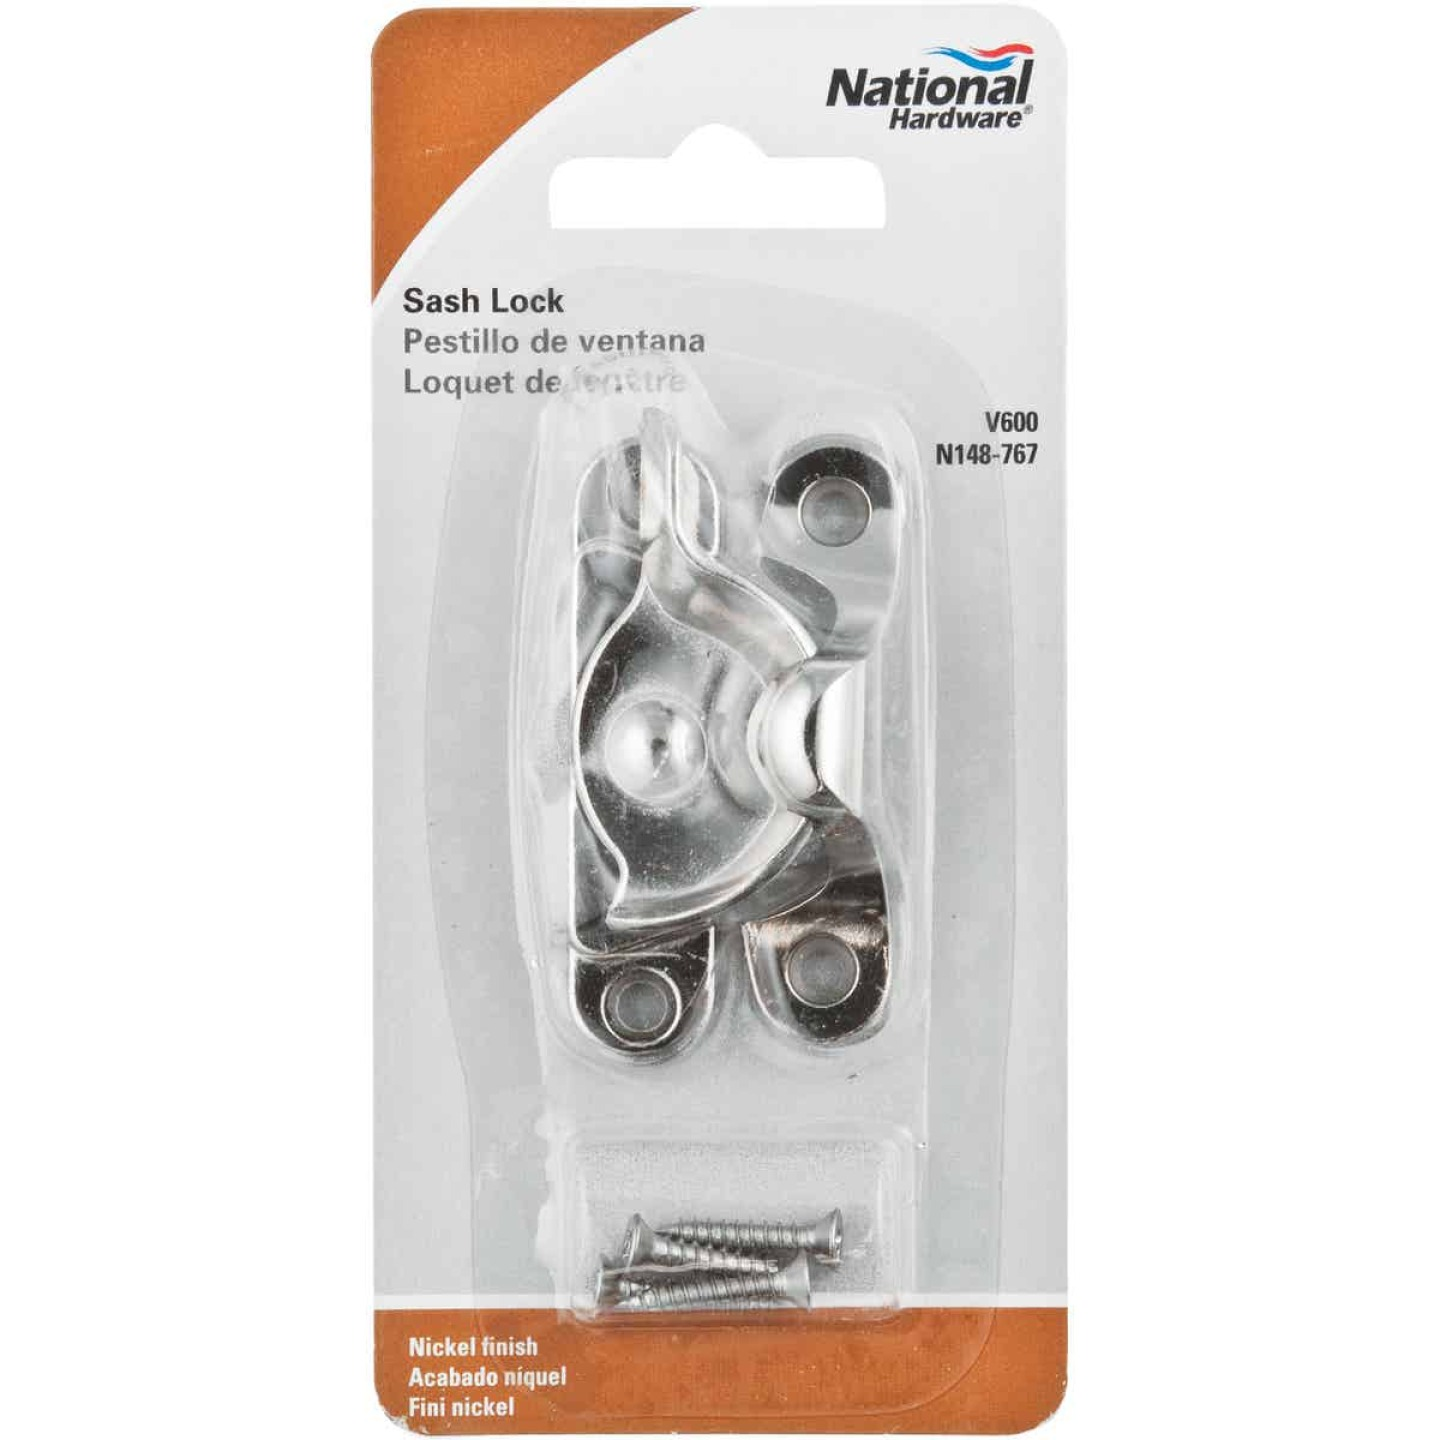 National Nickel 7/8 In. Crescent Sash Lock Image 2